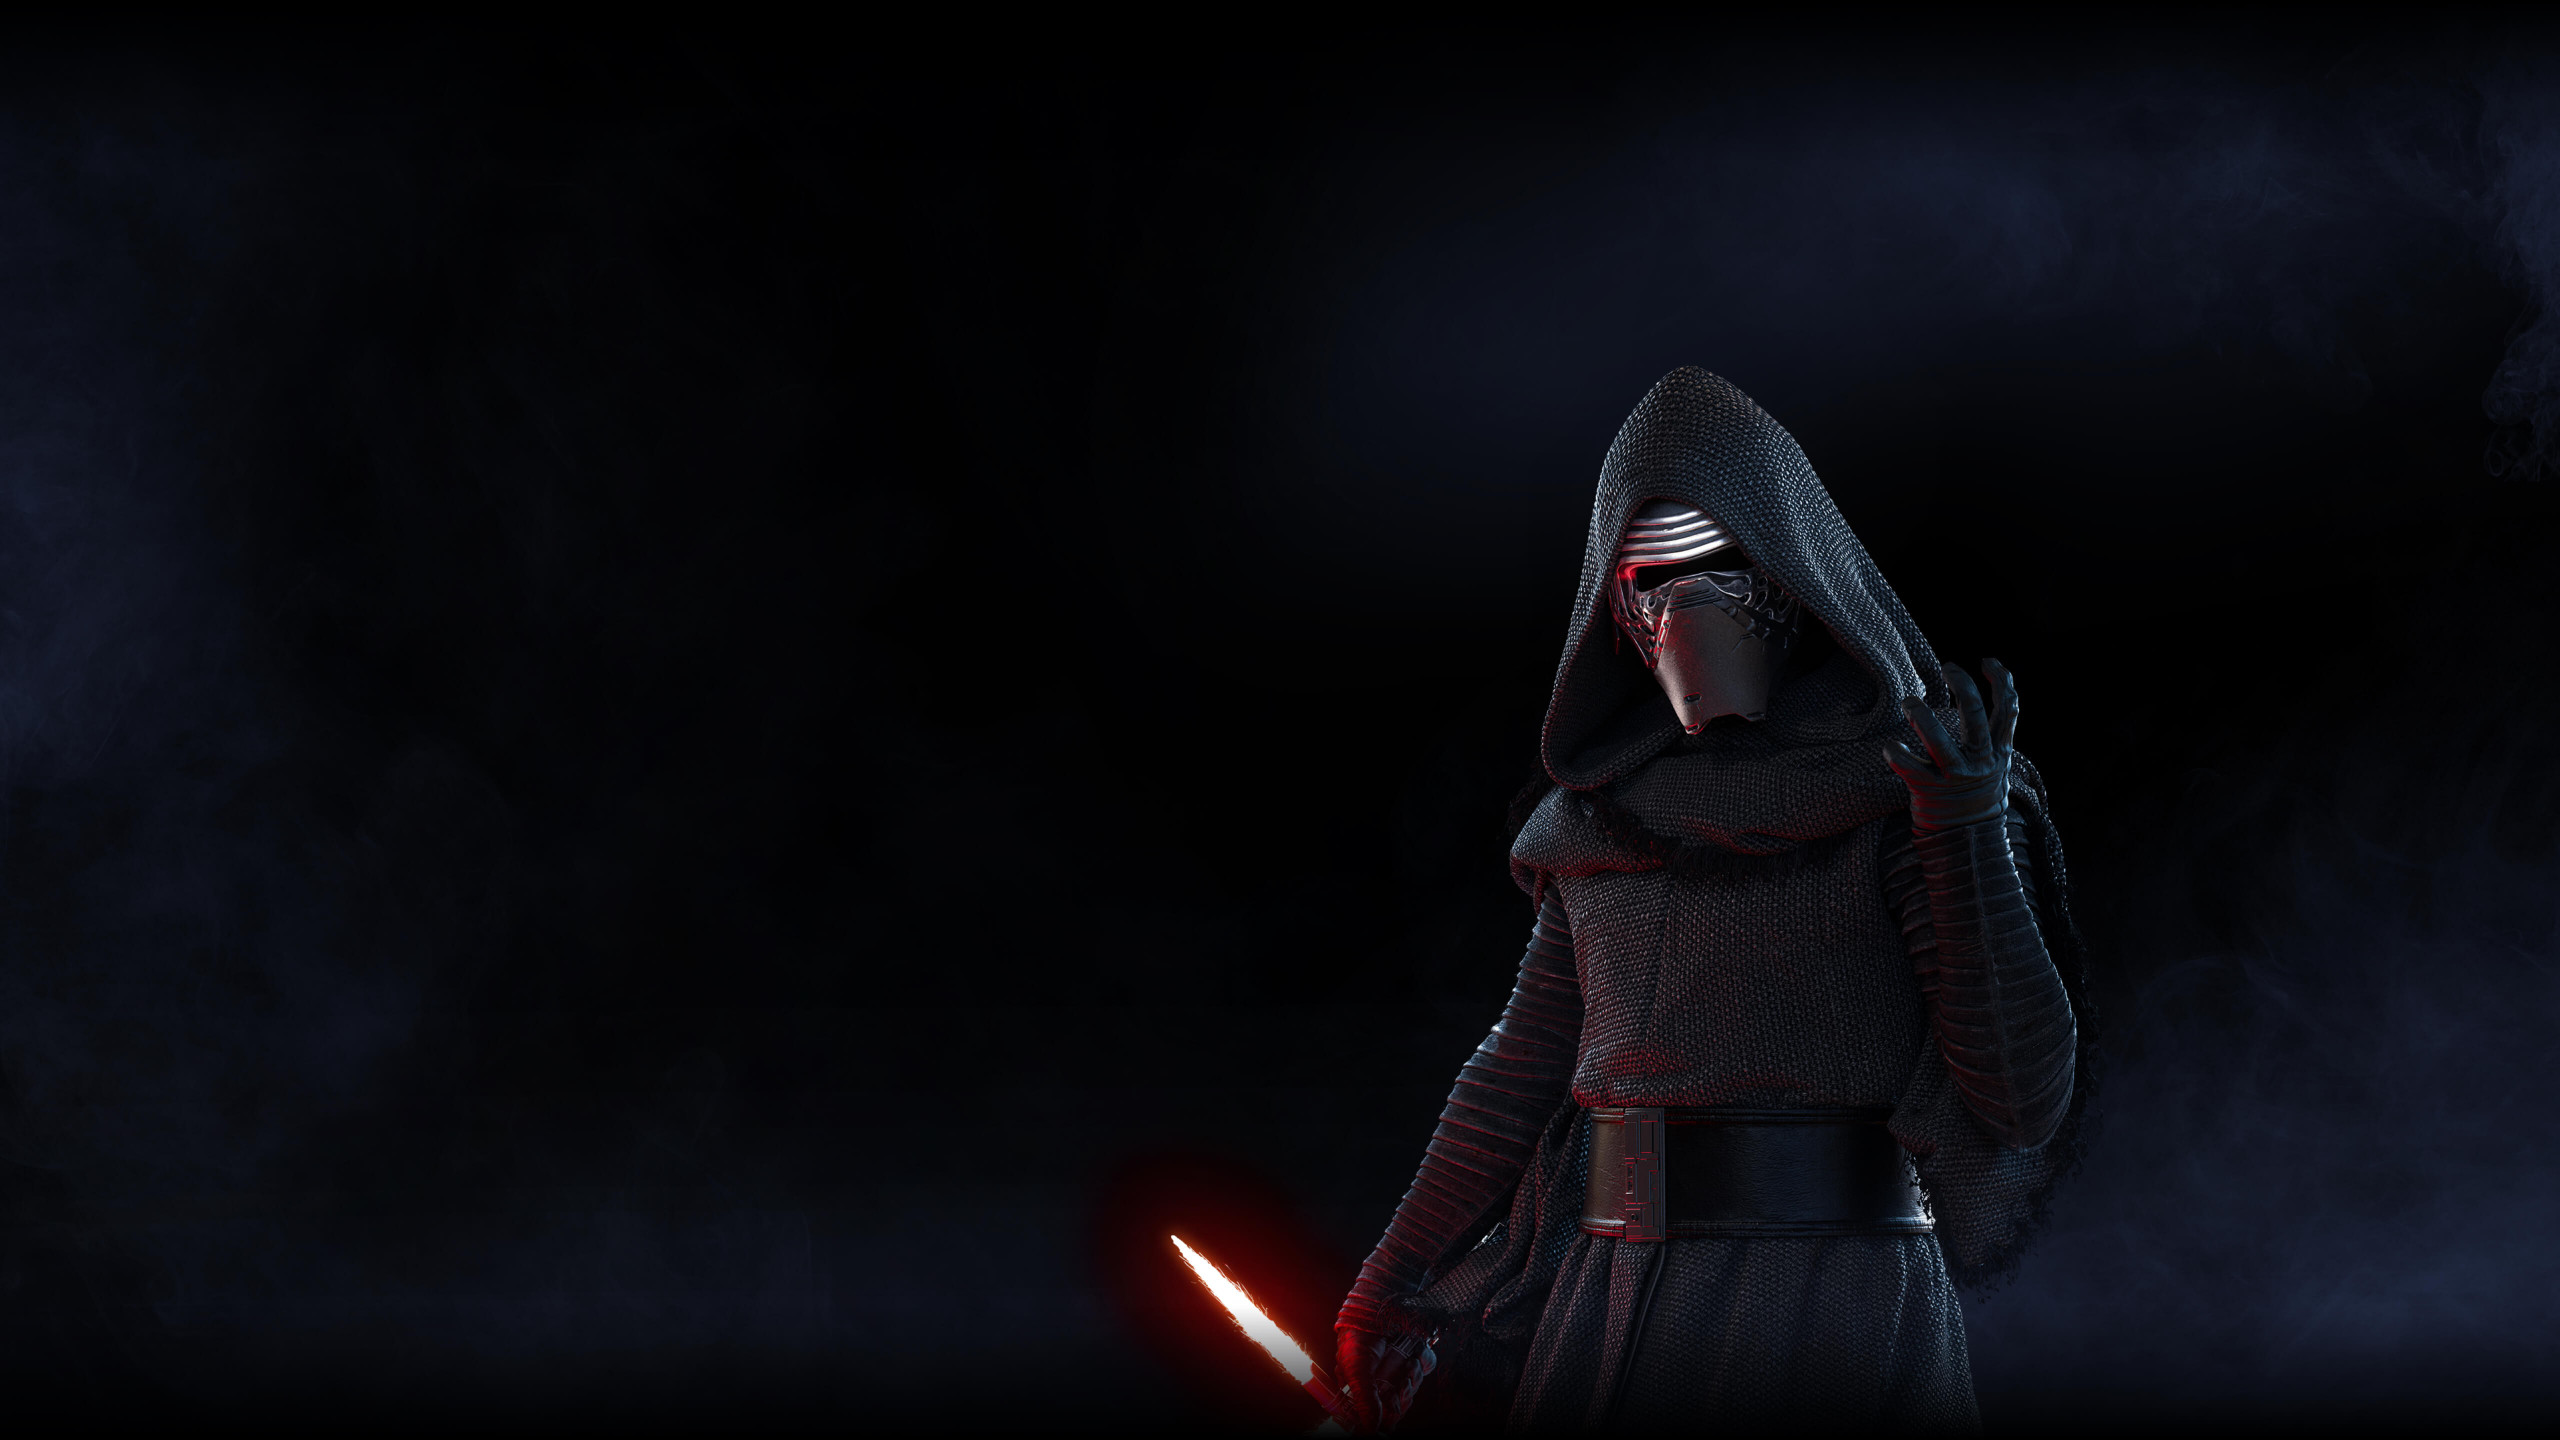 Download Wallpaper Kylo Ren From Star Wars Battlefront 2 2560x1440